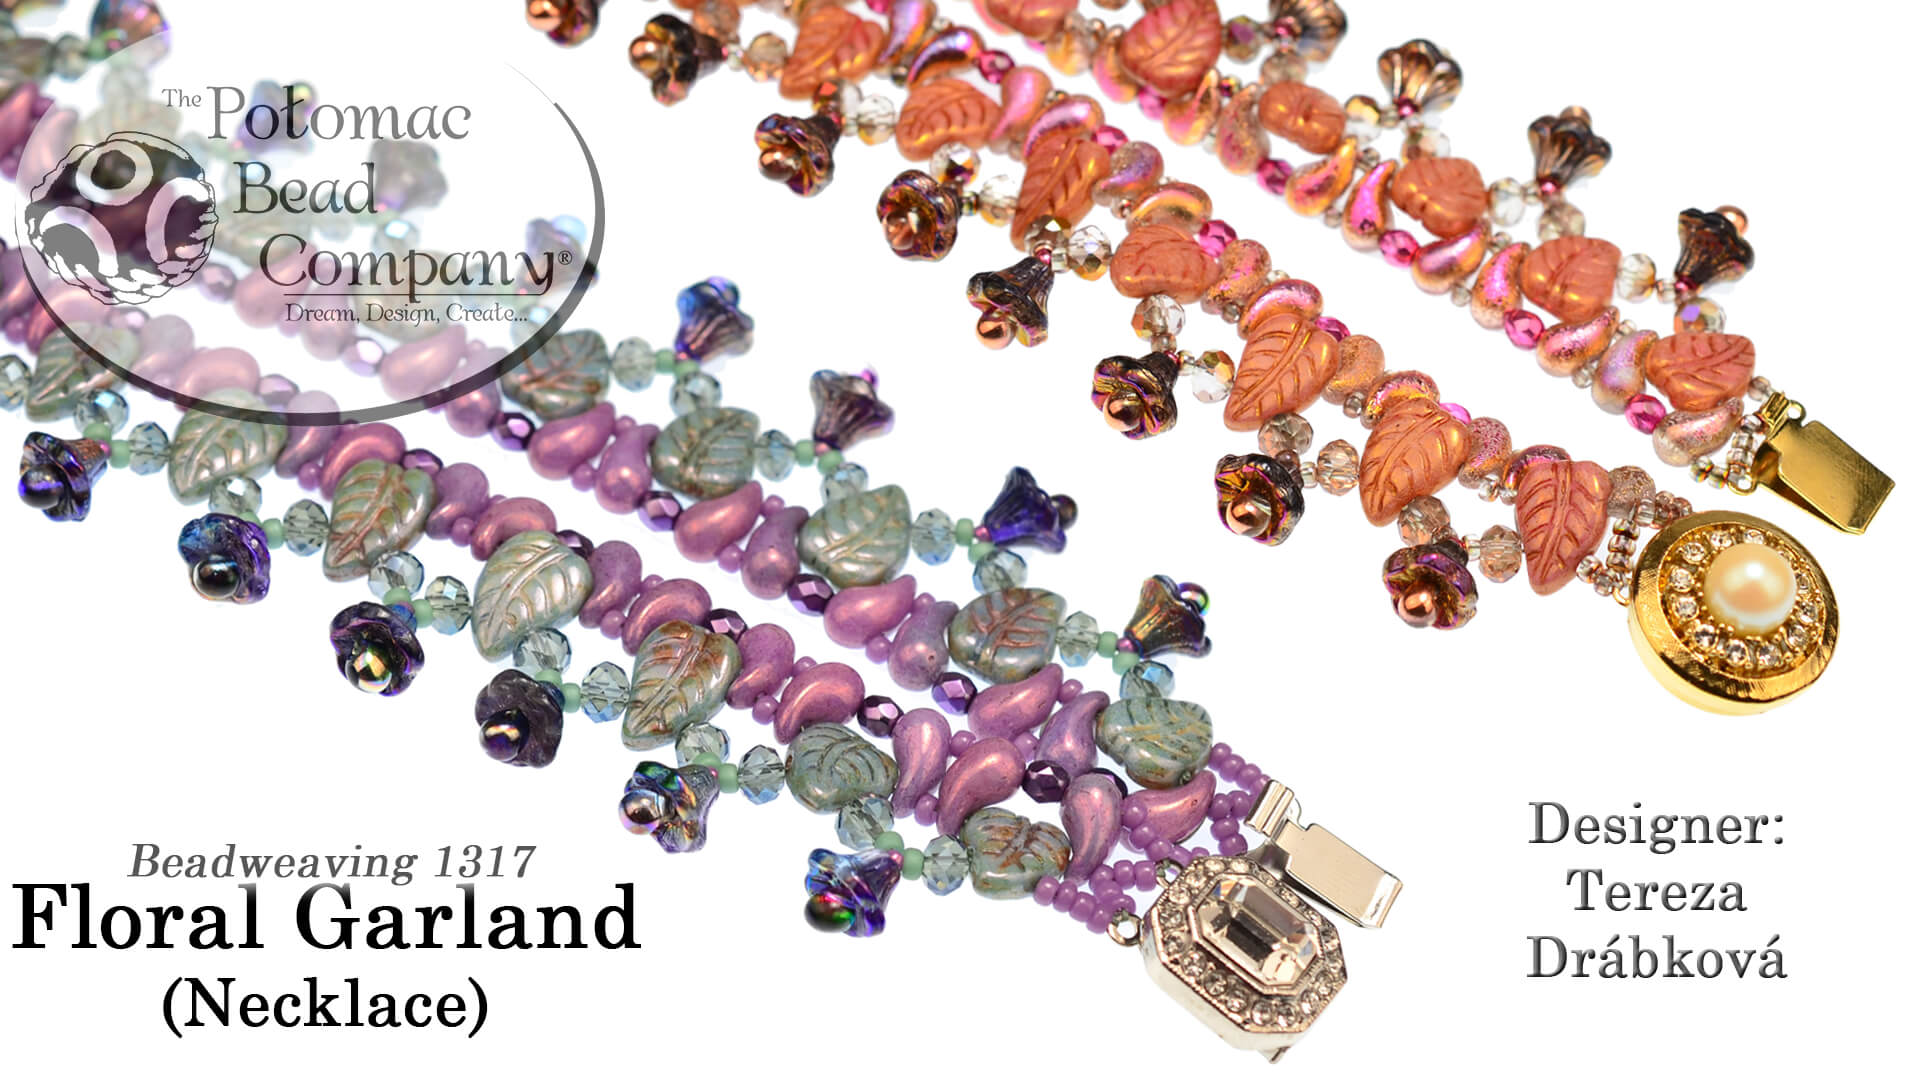 How to Bead Jewelry / Videos Sorted by Beads / ZoliDuo and Paisley Duo Bead Videos / Floral Garland Necklace Tutorial